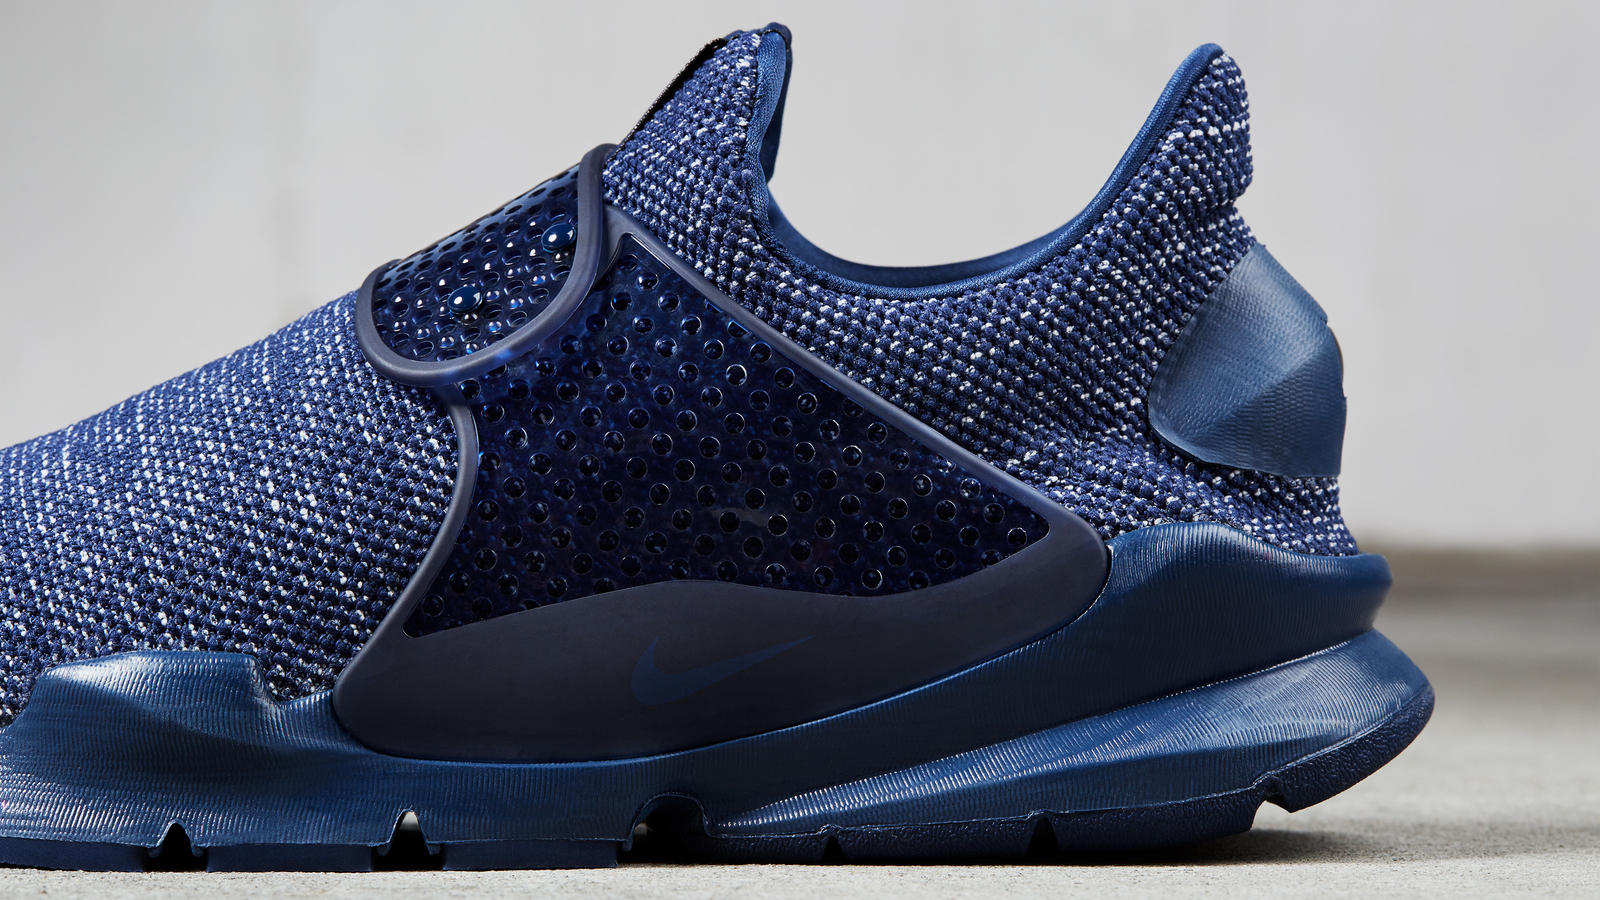 new arrivals a35ed 8e4e9 Nike Sock Dart Breathe - Nike News